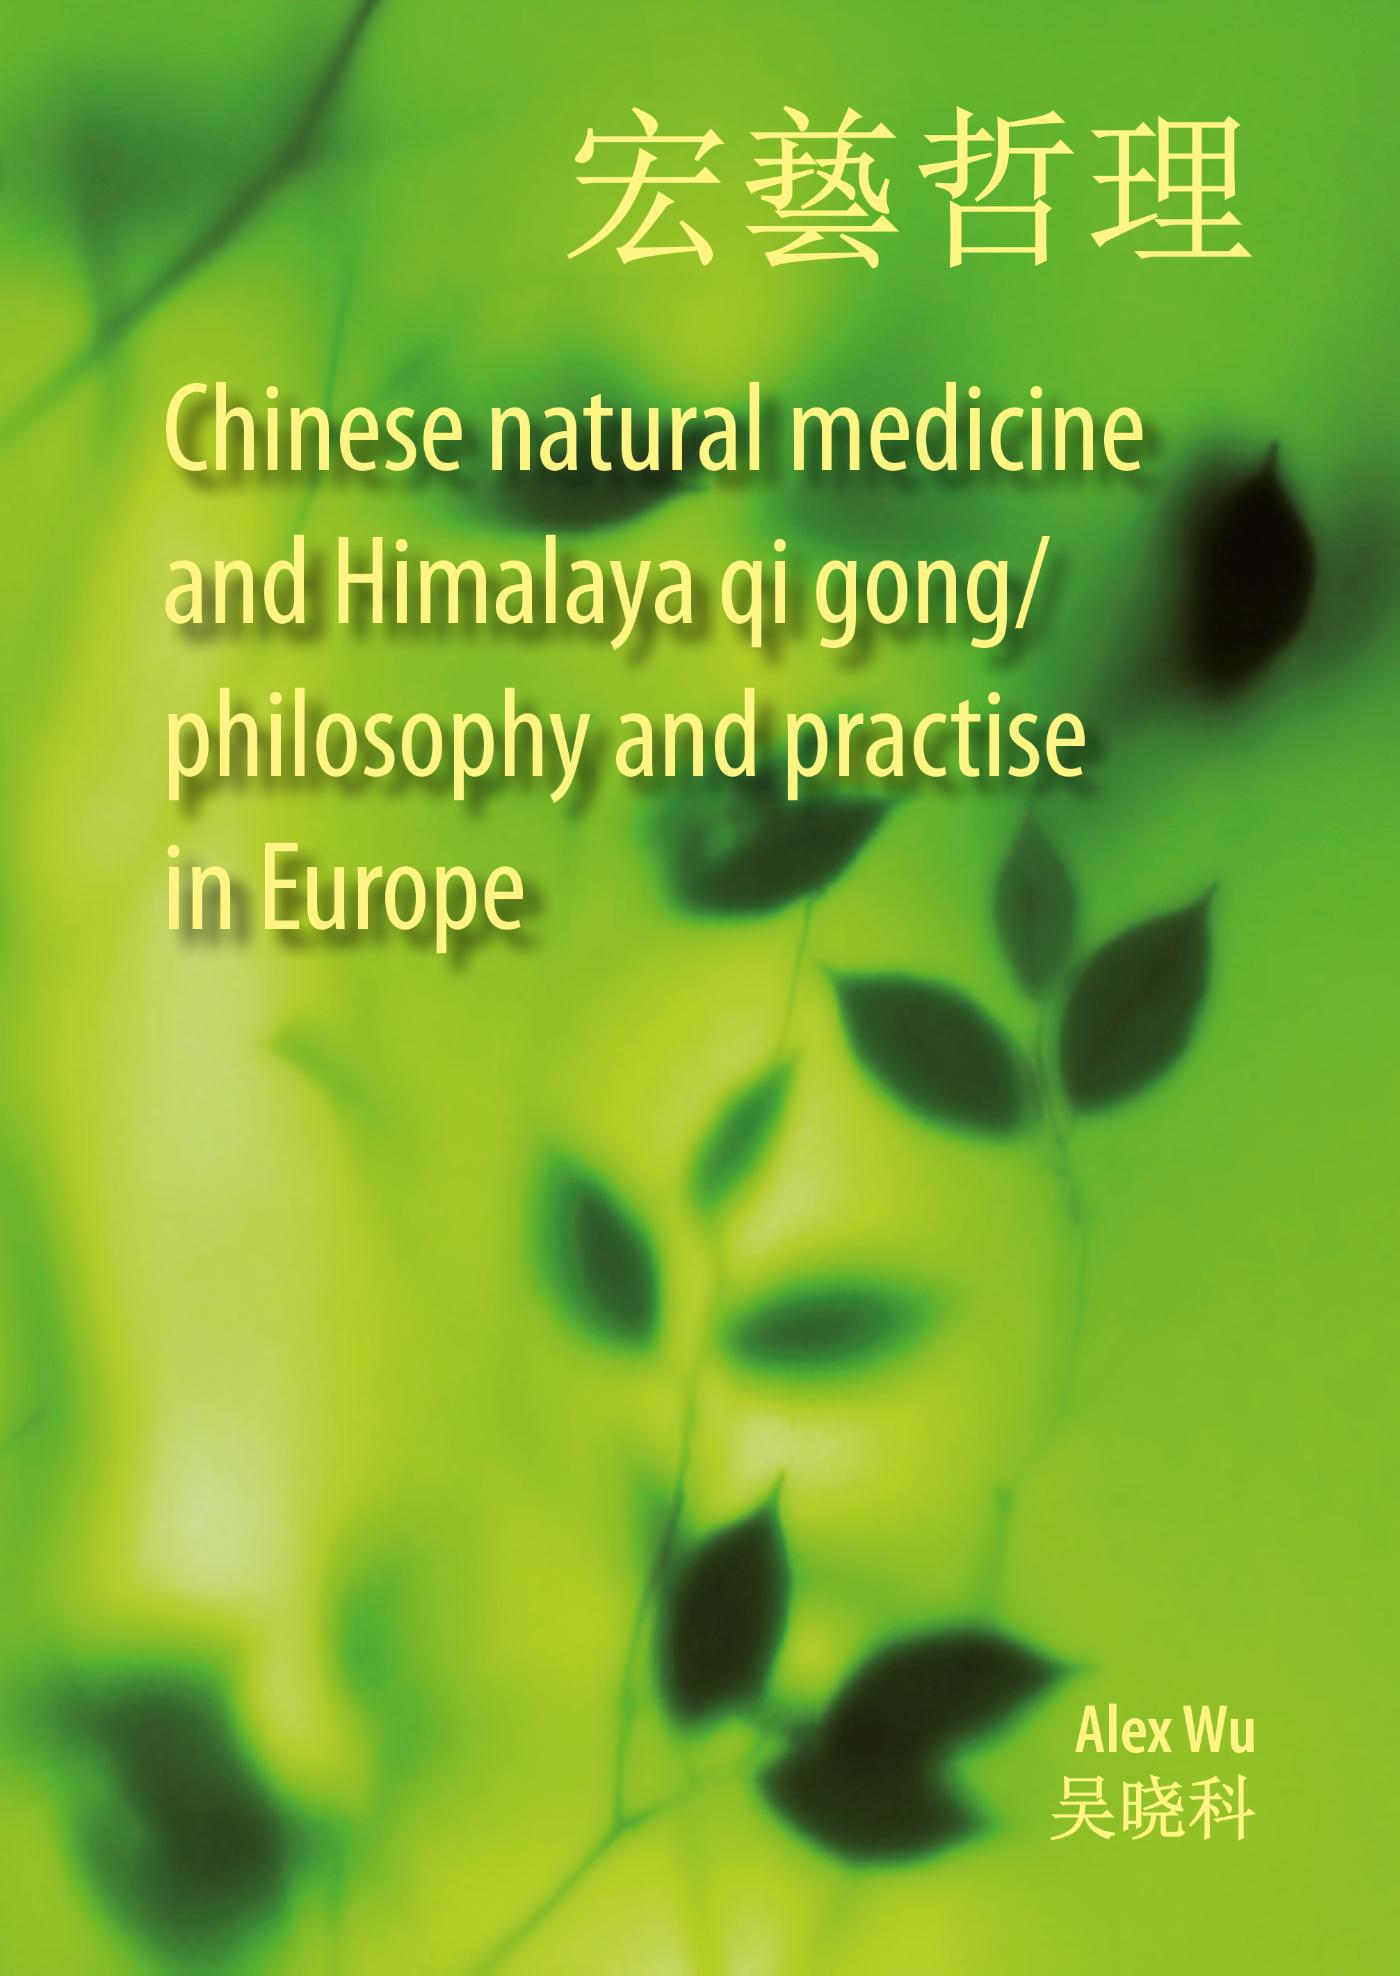 Chinese natural medicine and Himalaya qi gong / philosophy and practise in Europe